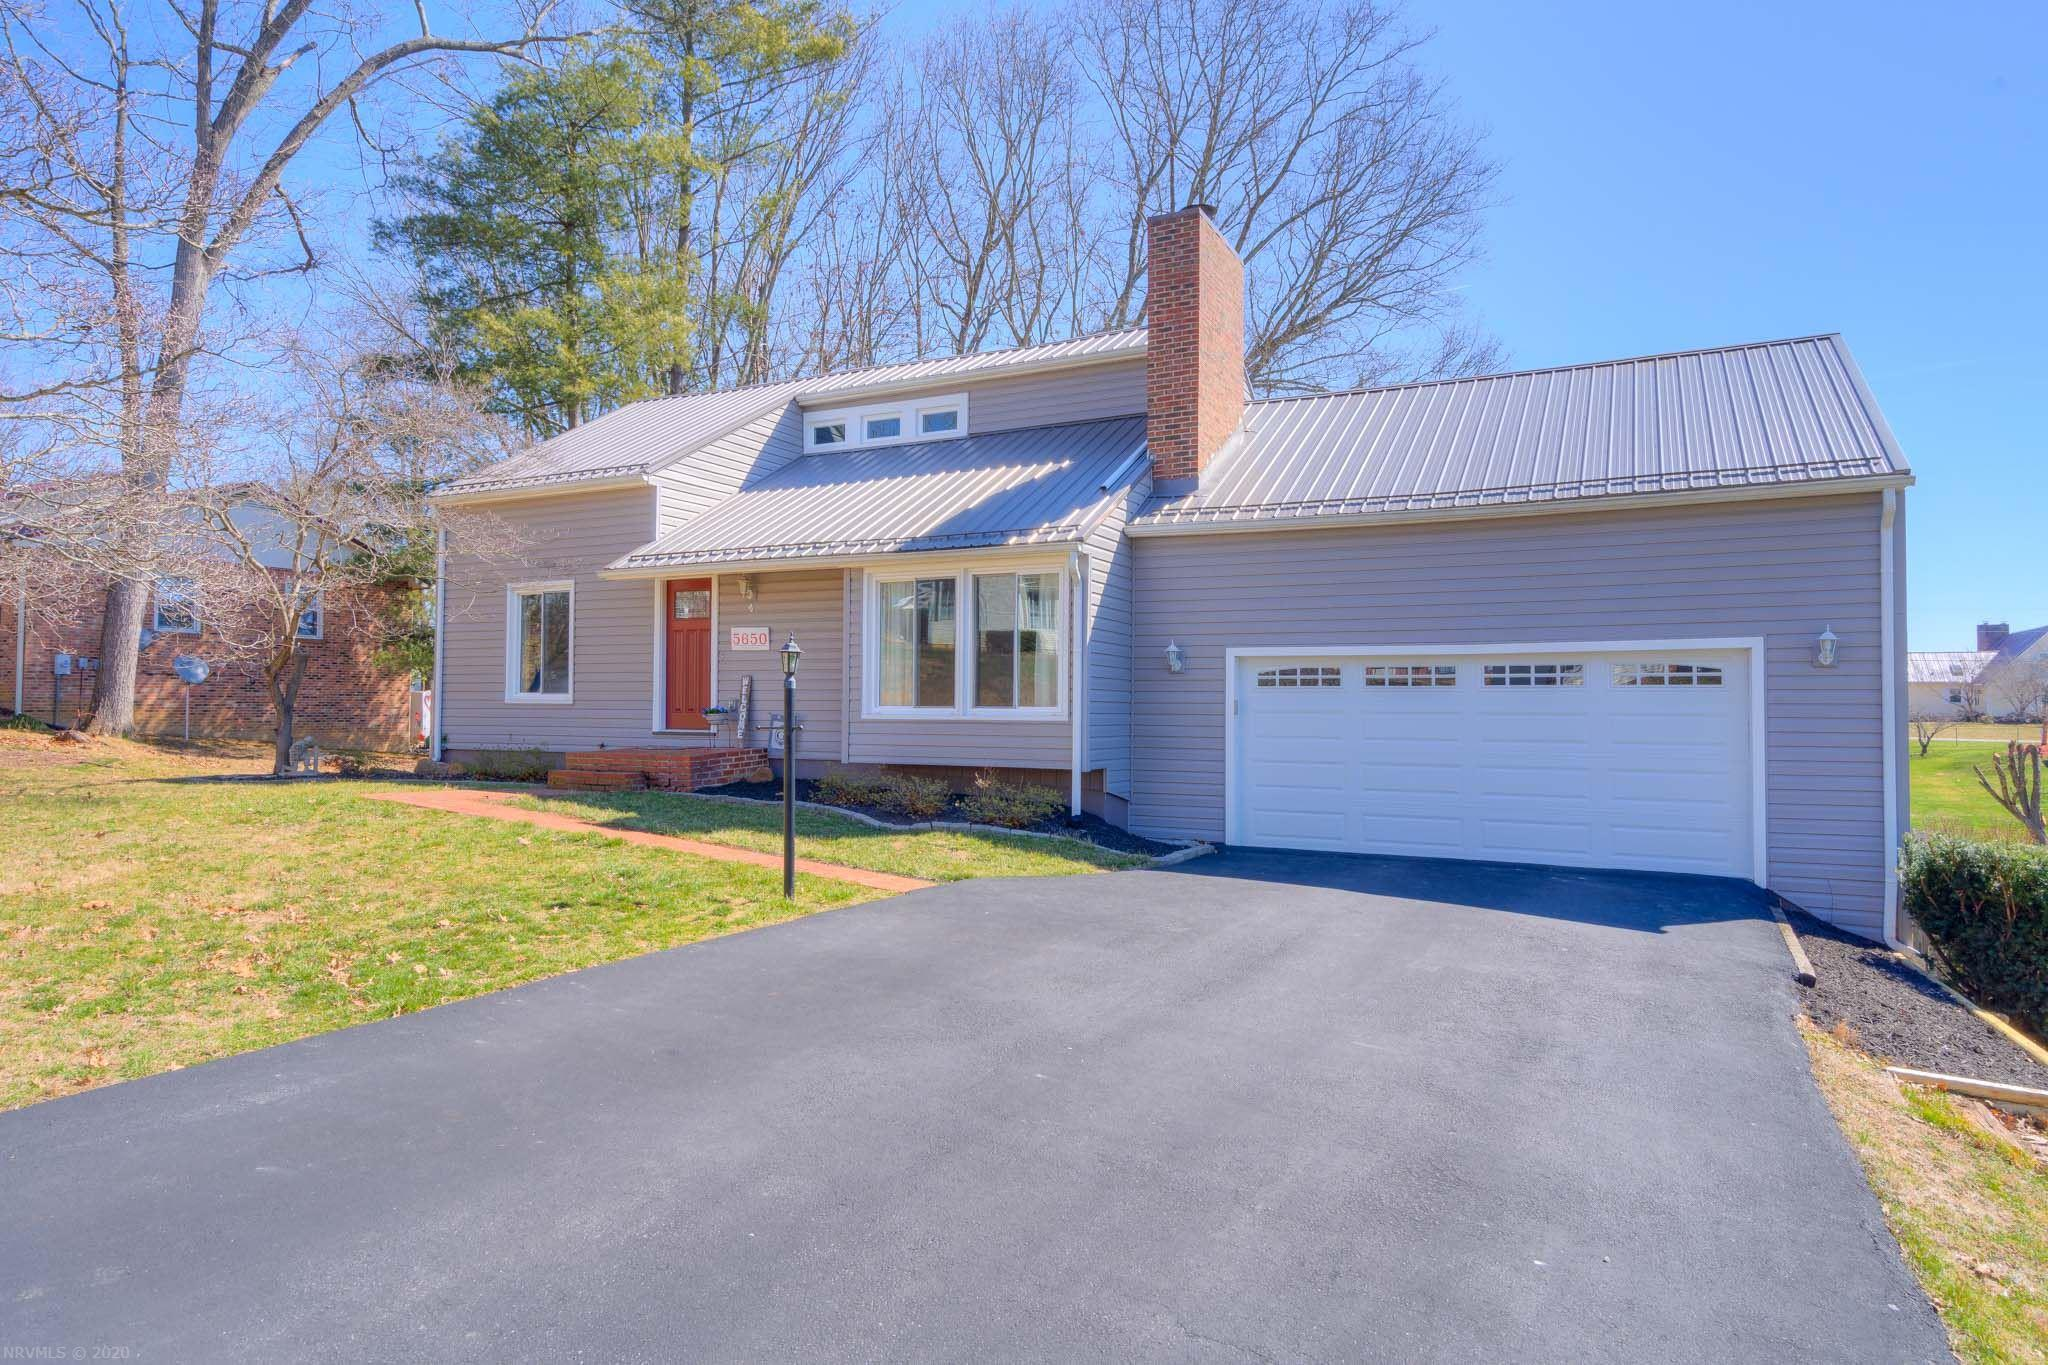 Welcome to 5650 Sharon Drive, a bright and airy contemporary ready for new owners!  The living room features a dramatic vaulted ceiling and fireplace.  The updated and open kitchen and dining space offer easy access to the garage and rear deck.  Buyers will appreciate the main floor owner's bedroom and bath, and two additional bedrooms and a bath upstairs.  Downstairs features an office/media room, oversized family room, and laundry/storage.  New windows and several doors in 2016, water heater replaced in 2017, new kitchen, bathroom fixtures, heat pump, electric panel, radon mitigation, roof, gutters, vinyl & garage door in 2015.  Sunny, fully fenced rear lawn ideal for gardening and your four-legged friends.  Be sure to click on the virtual tour link.  Loved and full of charm, this home is truly move-in ready.